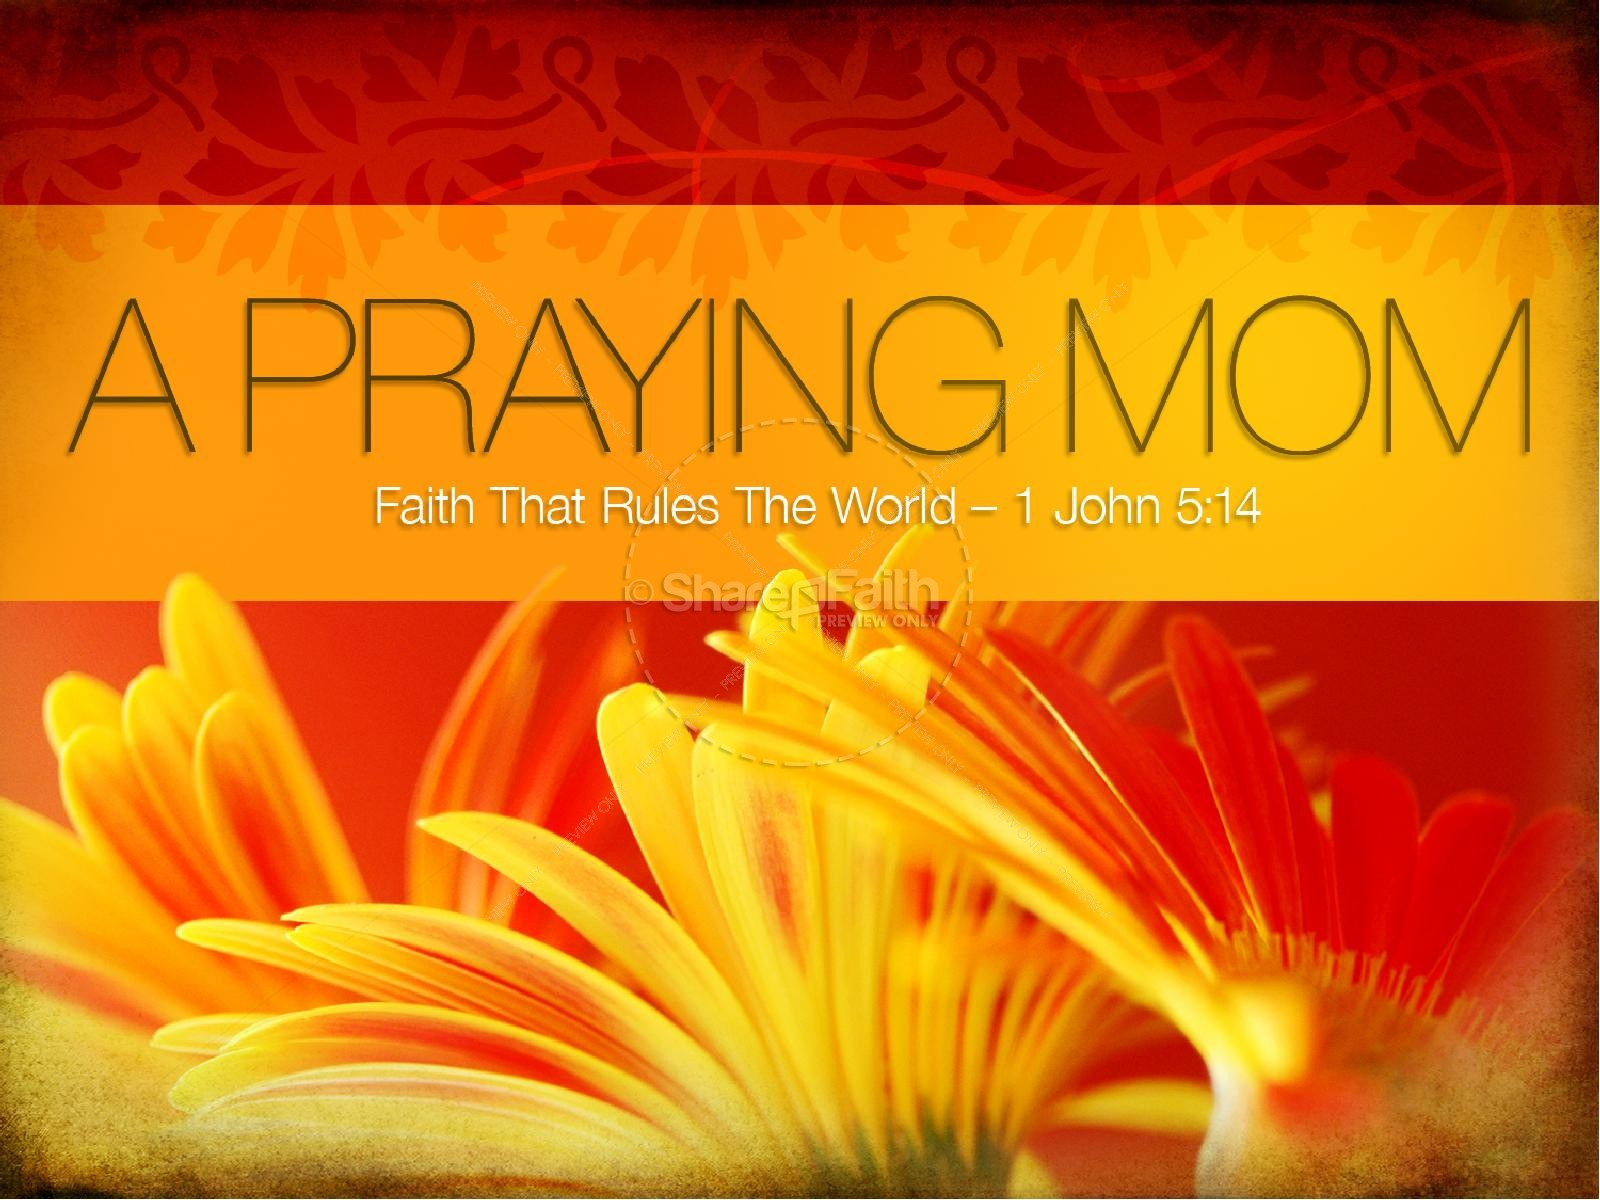 Praying Mom PowerPoint Template | slide 1